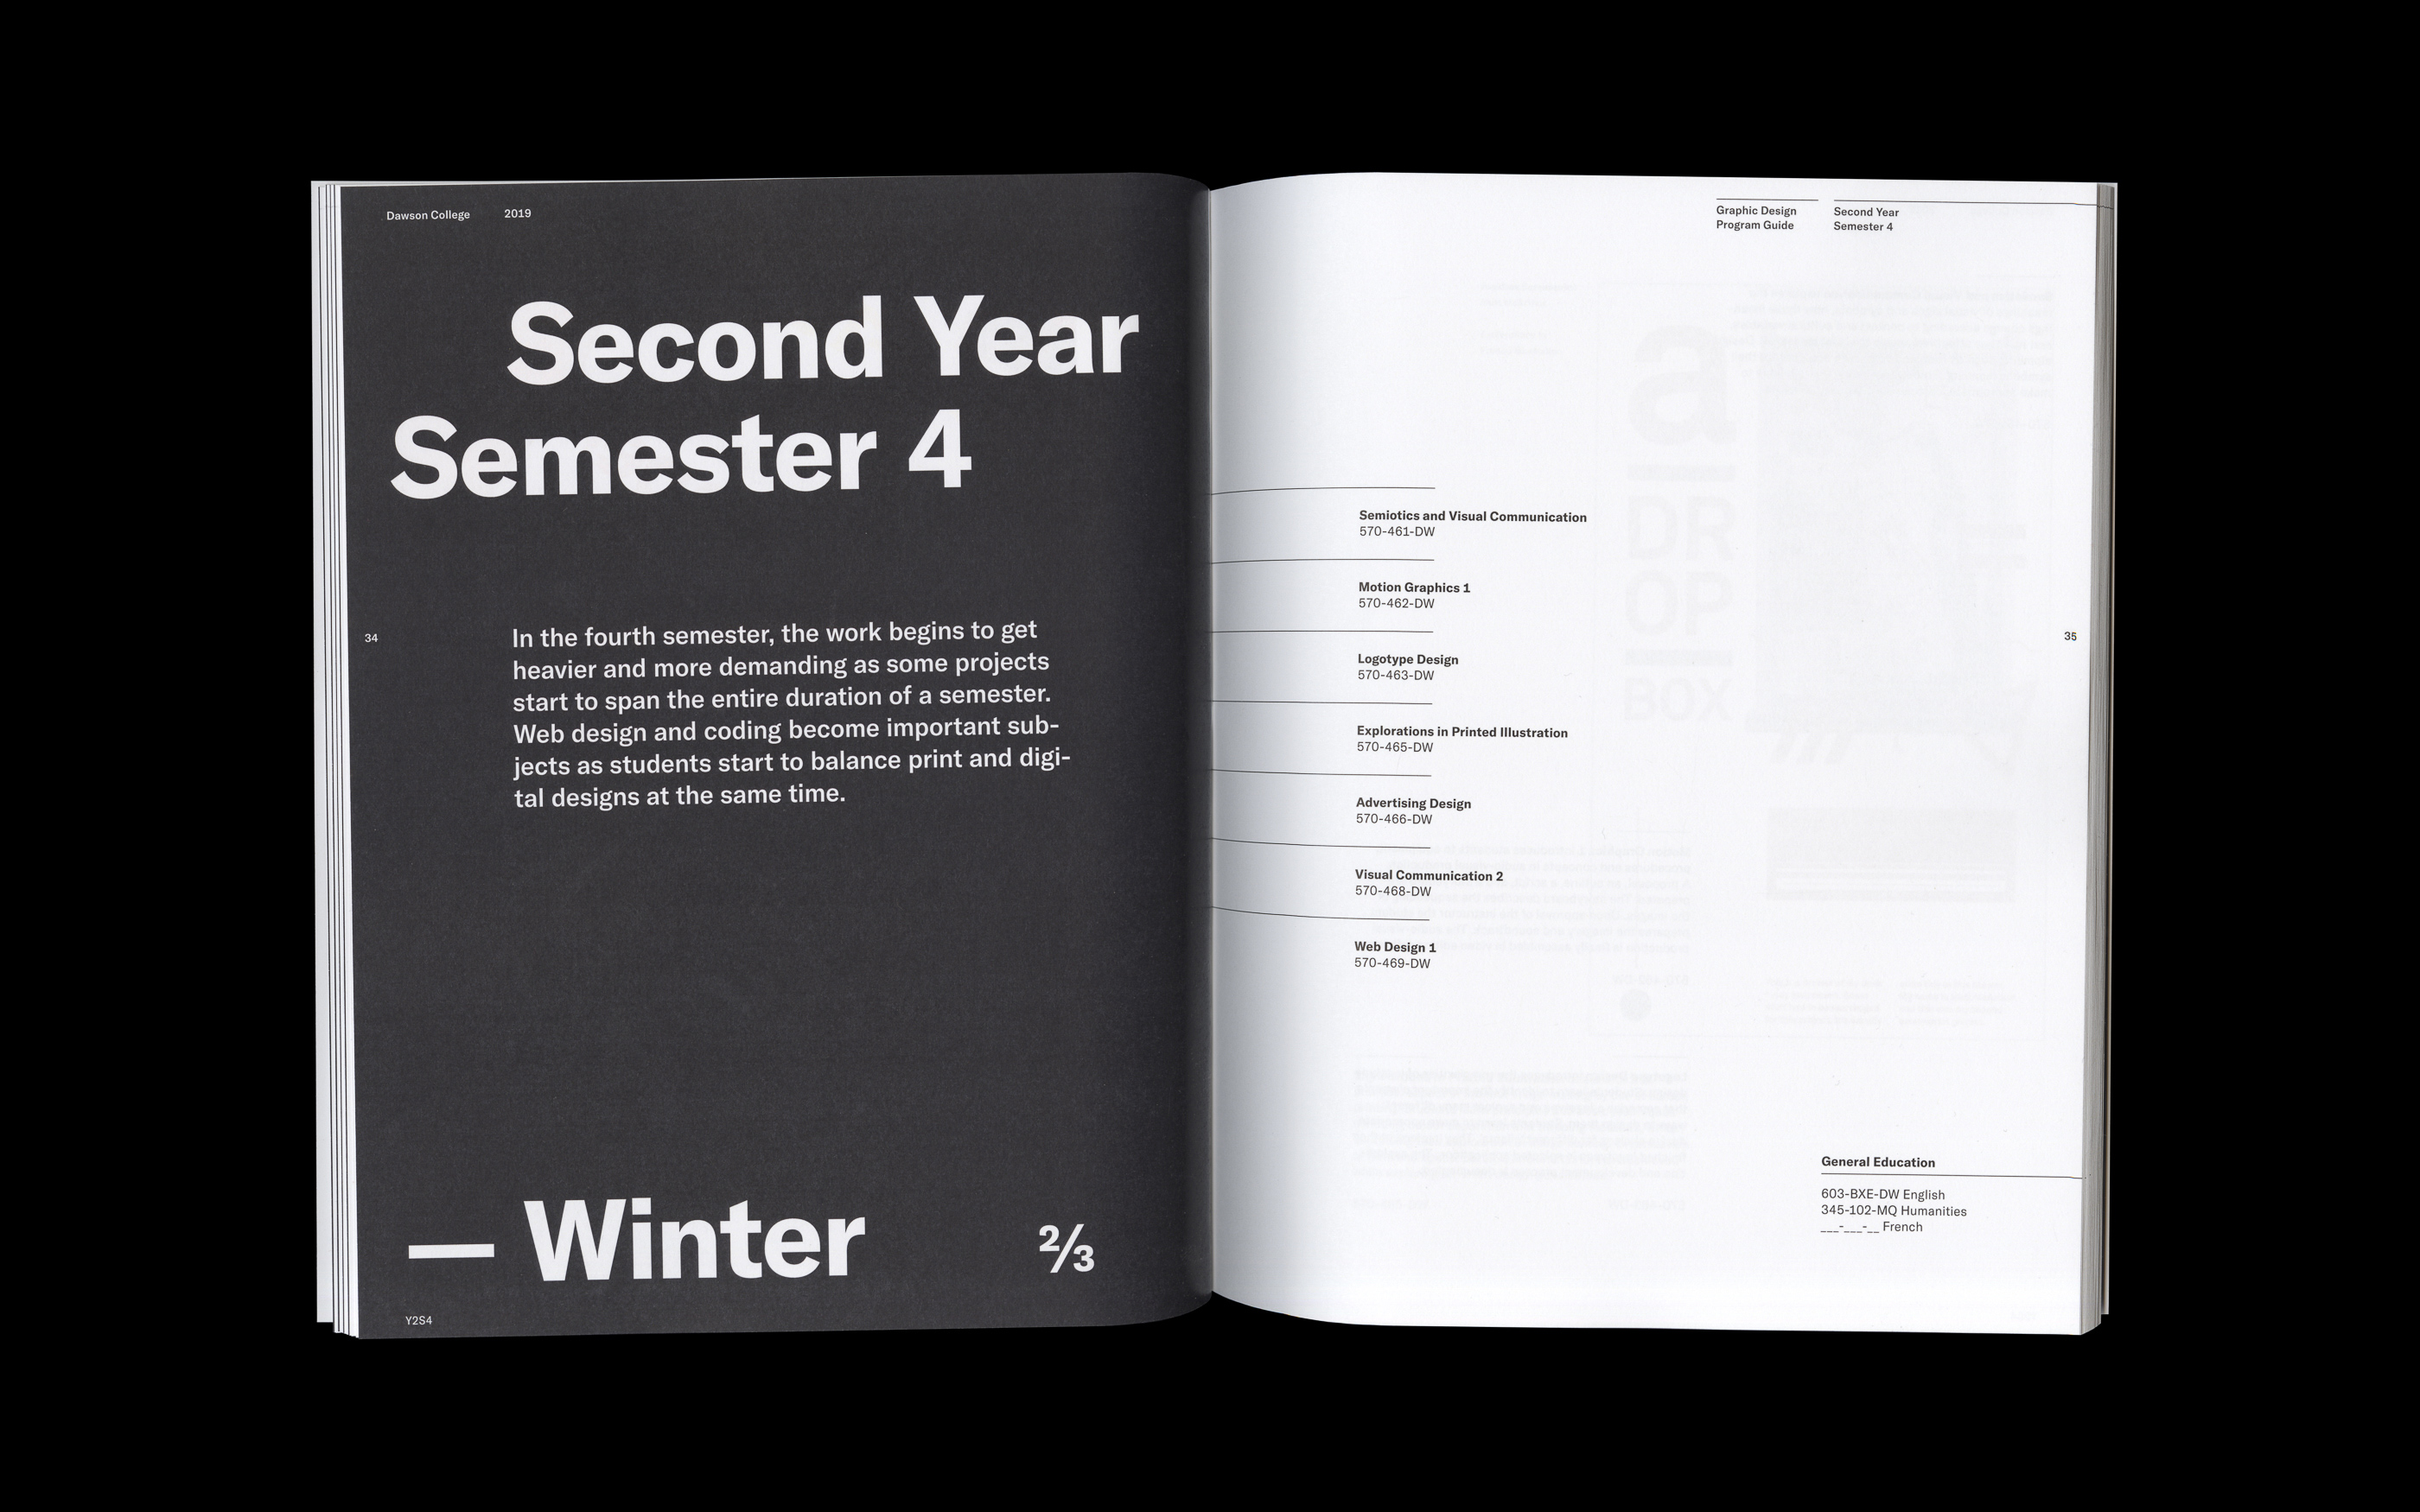 Second Year Semester 4 Divider